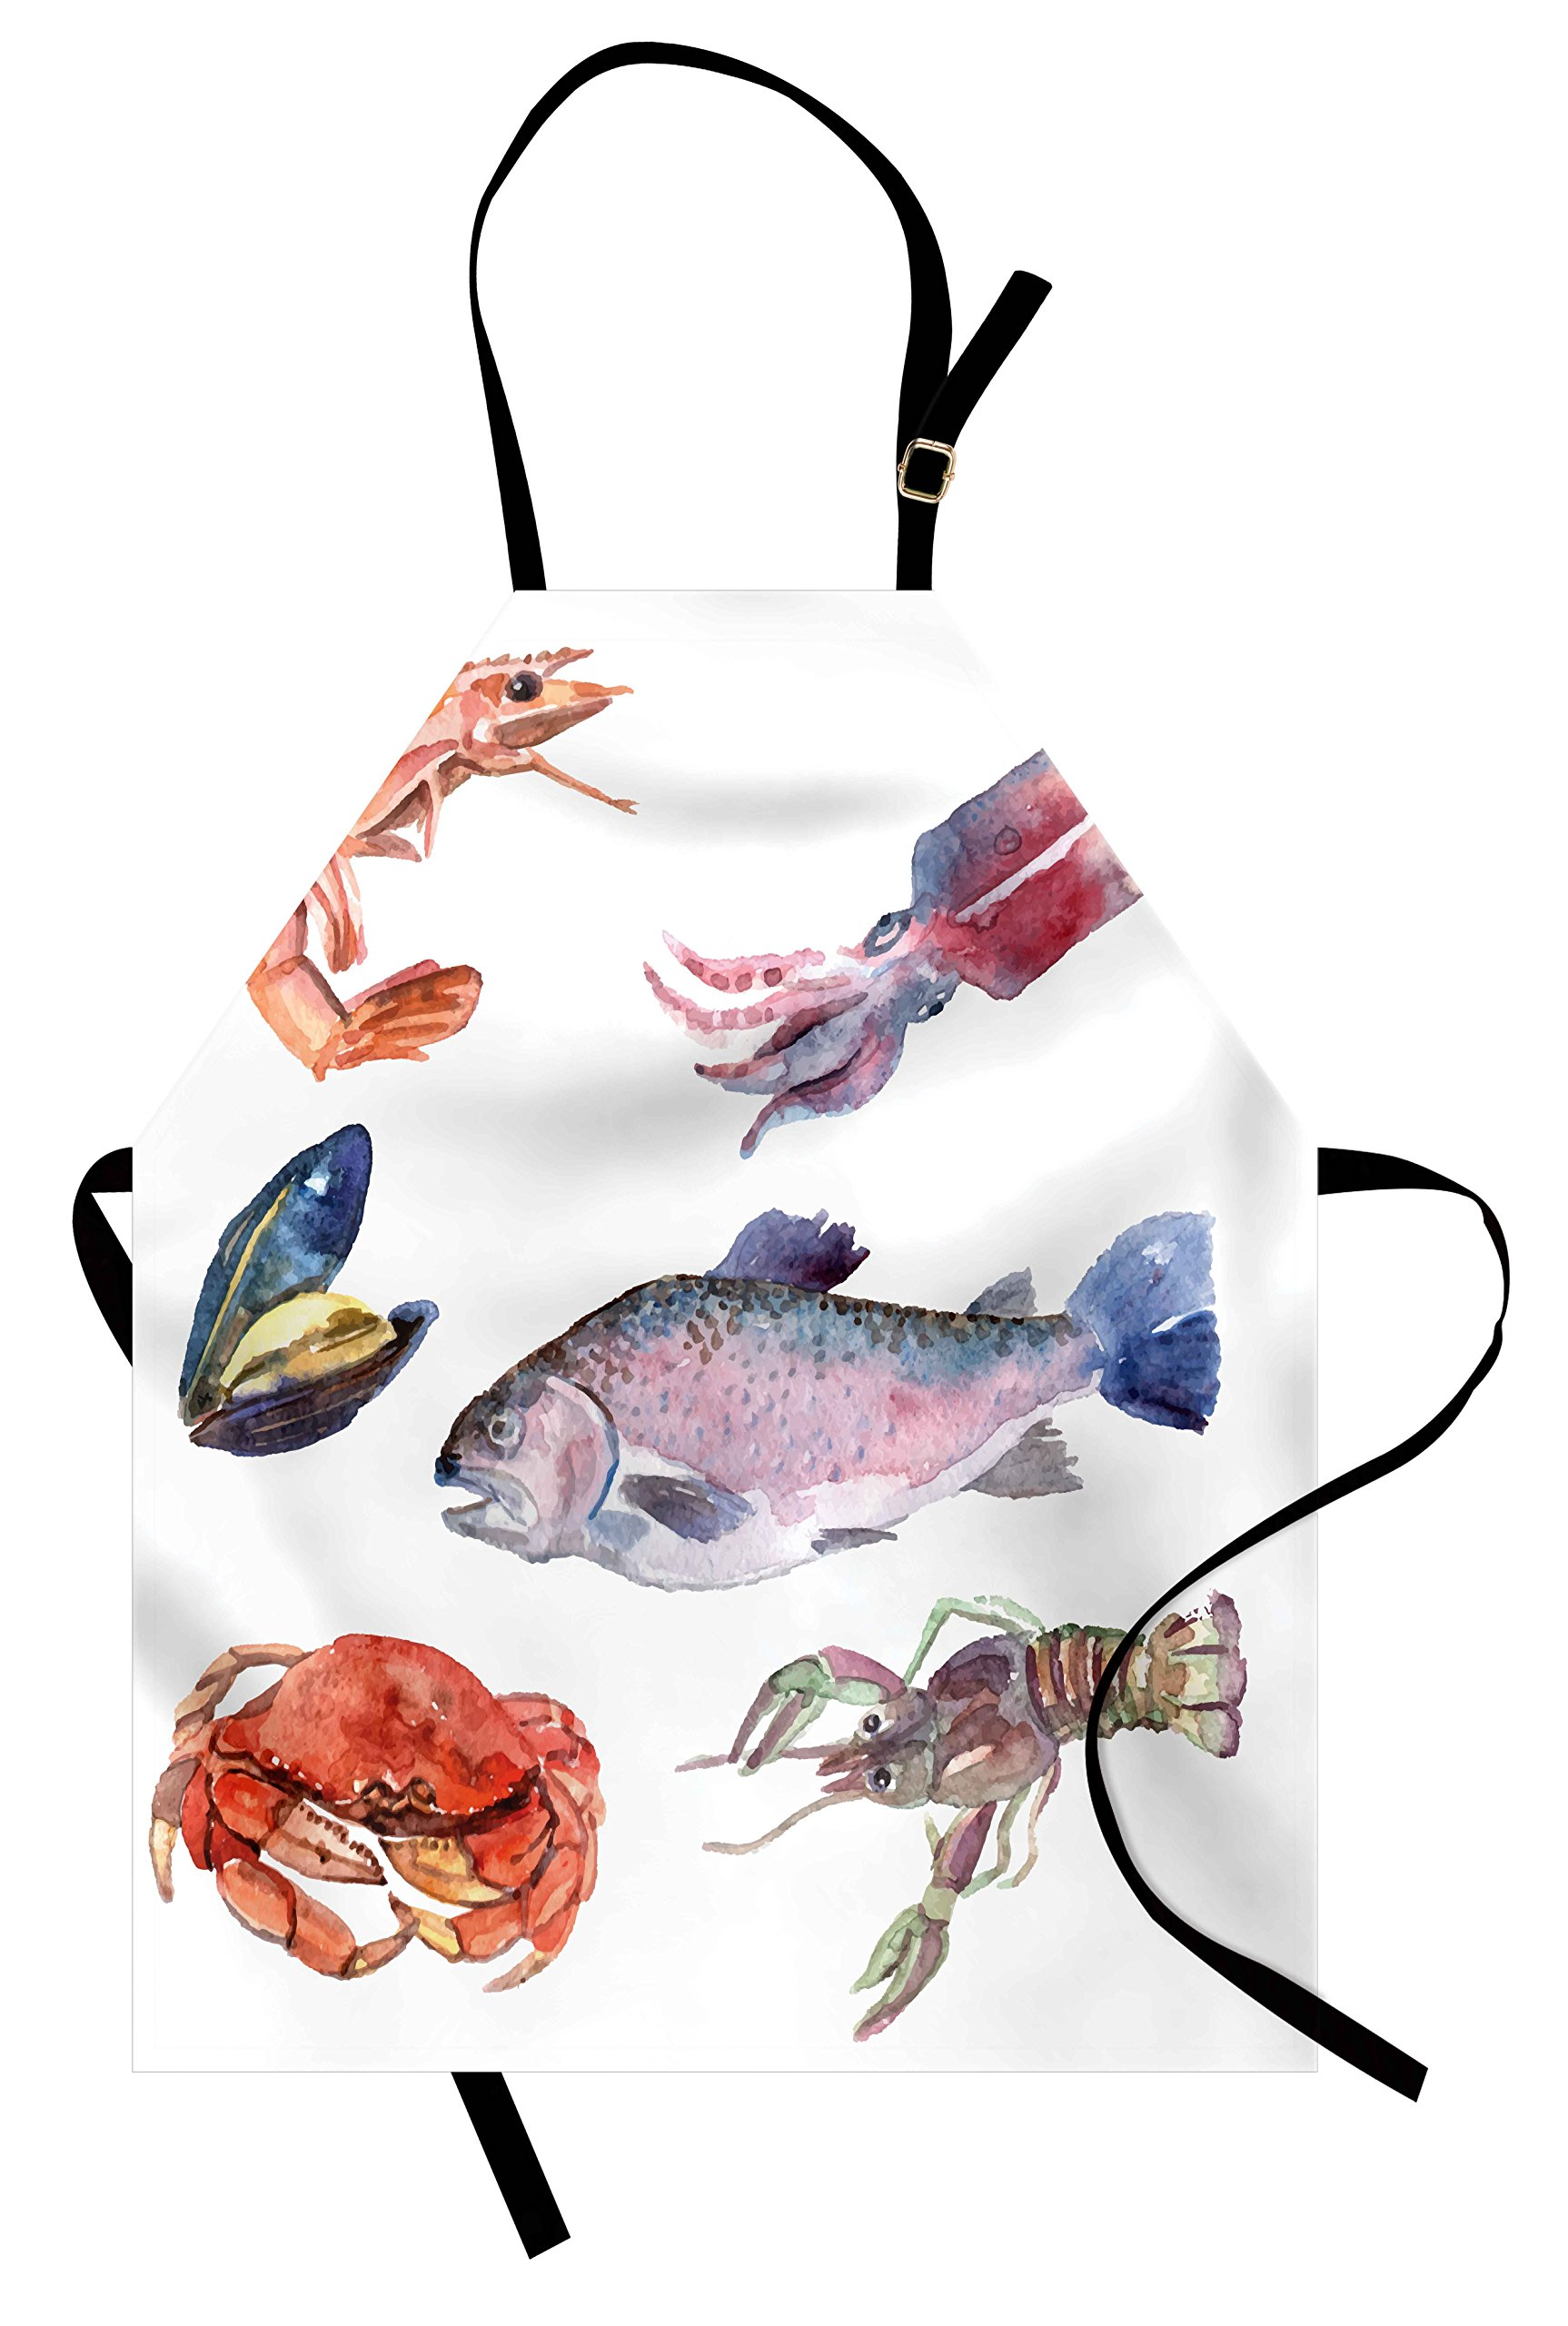 Ambesonne Sea Animals Apron, Sea Food Illustration with Shrimp Mussel Fish Crab Watercolor Painting Effect, Unisex Kitchen Bib Apron with Adjustable Neck for Cooking Baking Gardening, Mustard Navy by Ambesonne